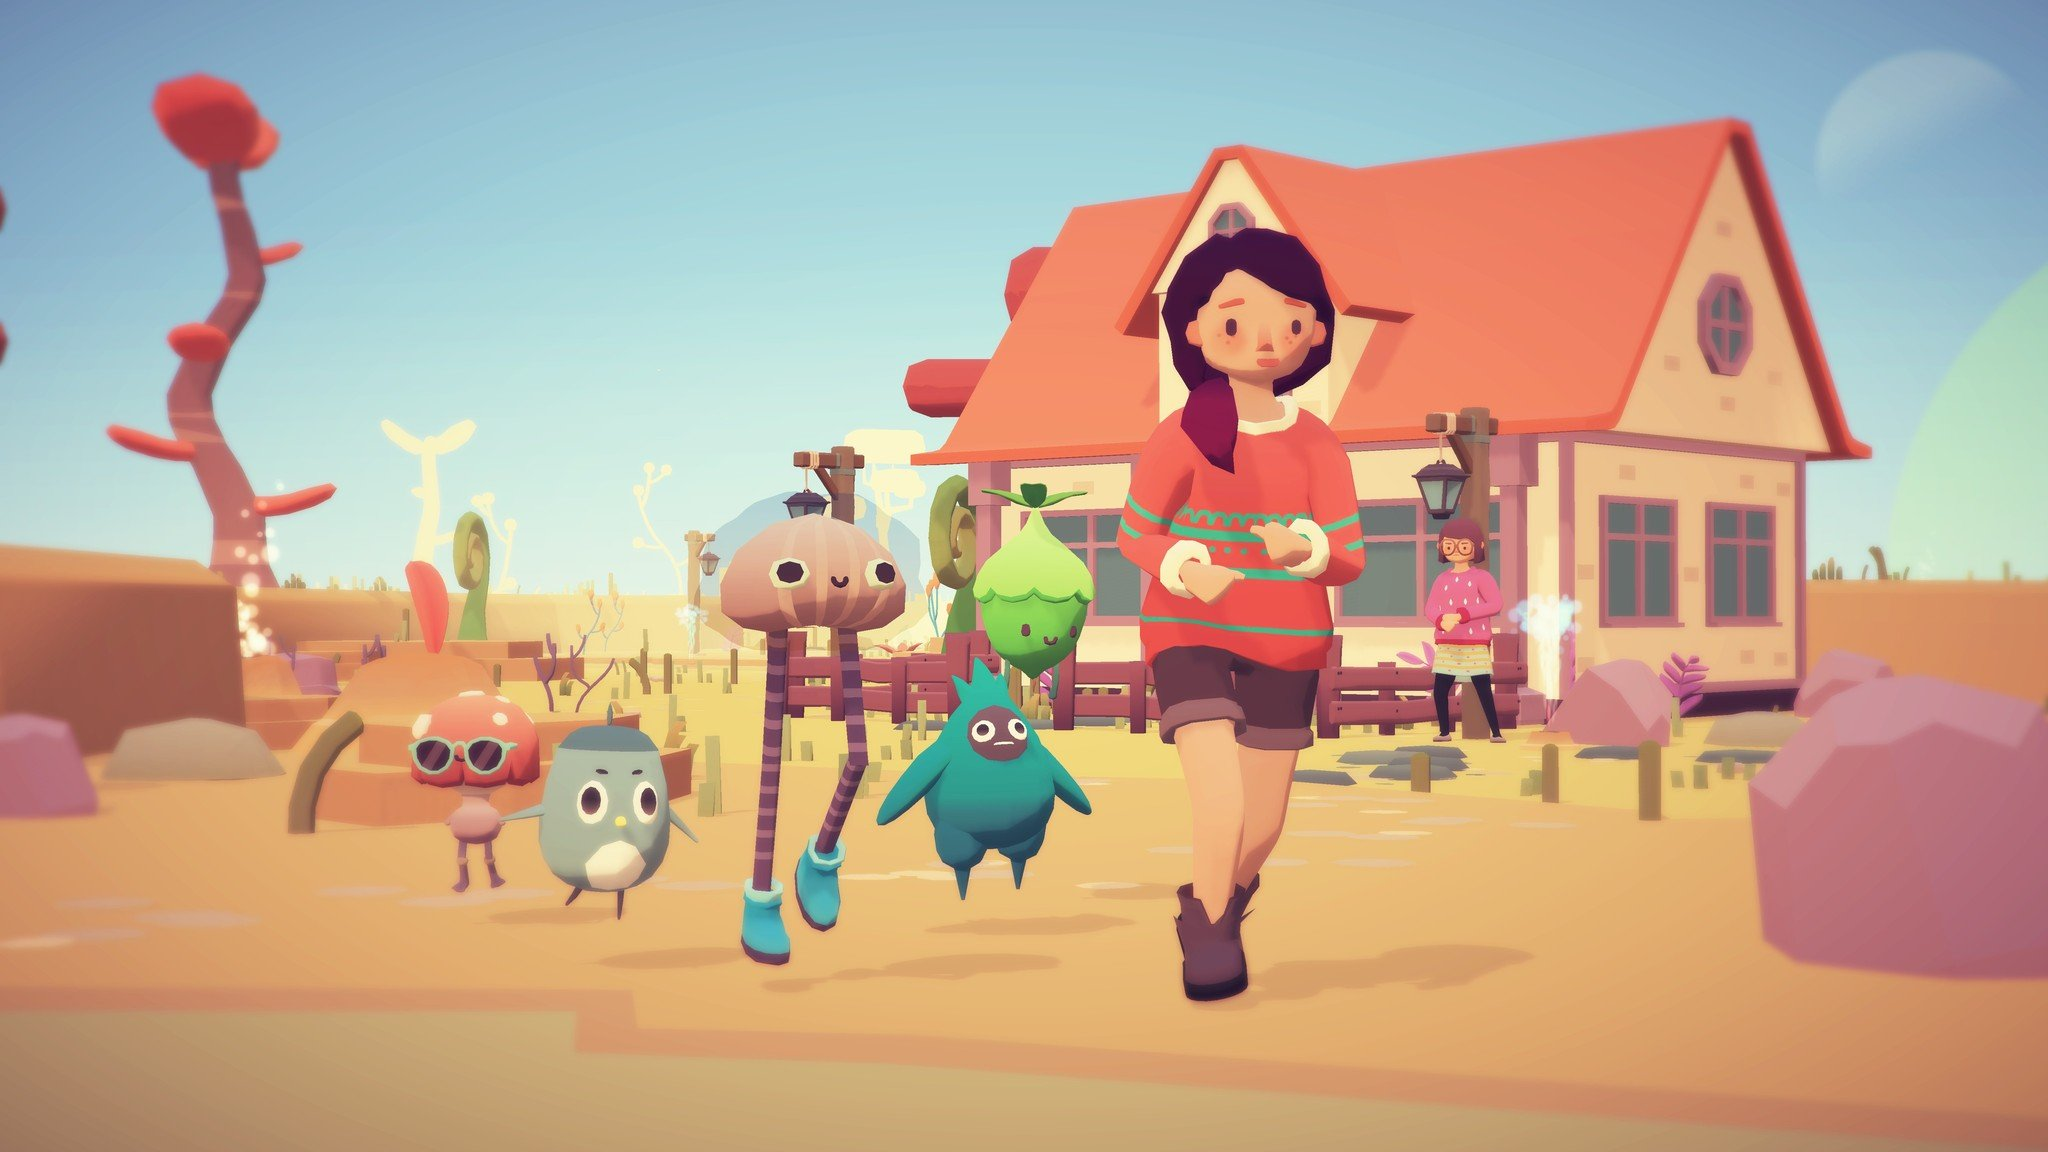 Fall Wallpaper Animal Crossing New Leaf Pok 233 Mon Meets Animal Crossing In Ooblets For Xbox One